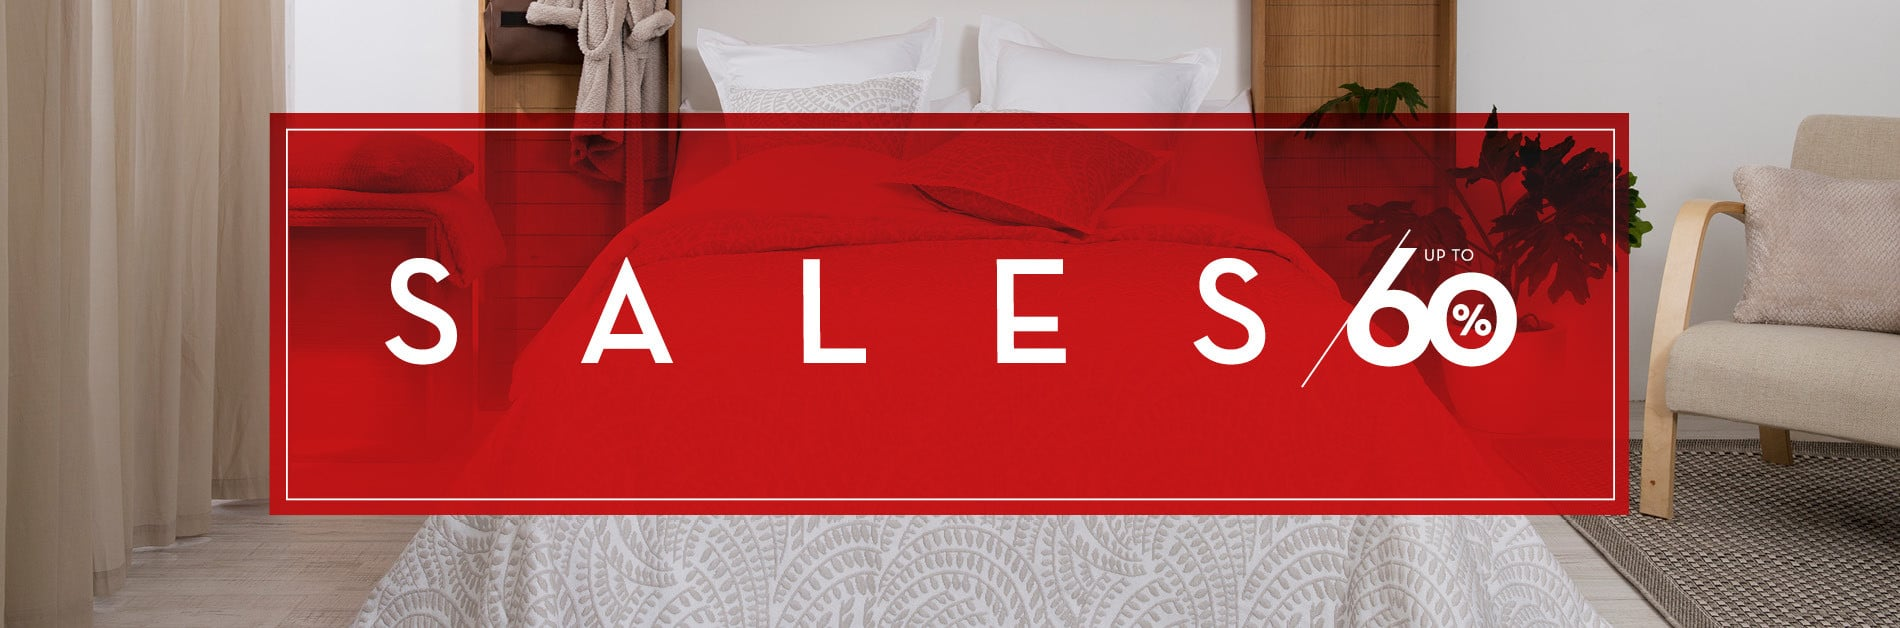 SALES - UP TO 60% OFF